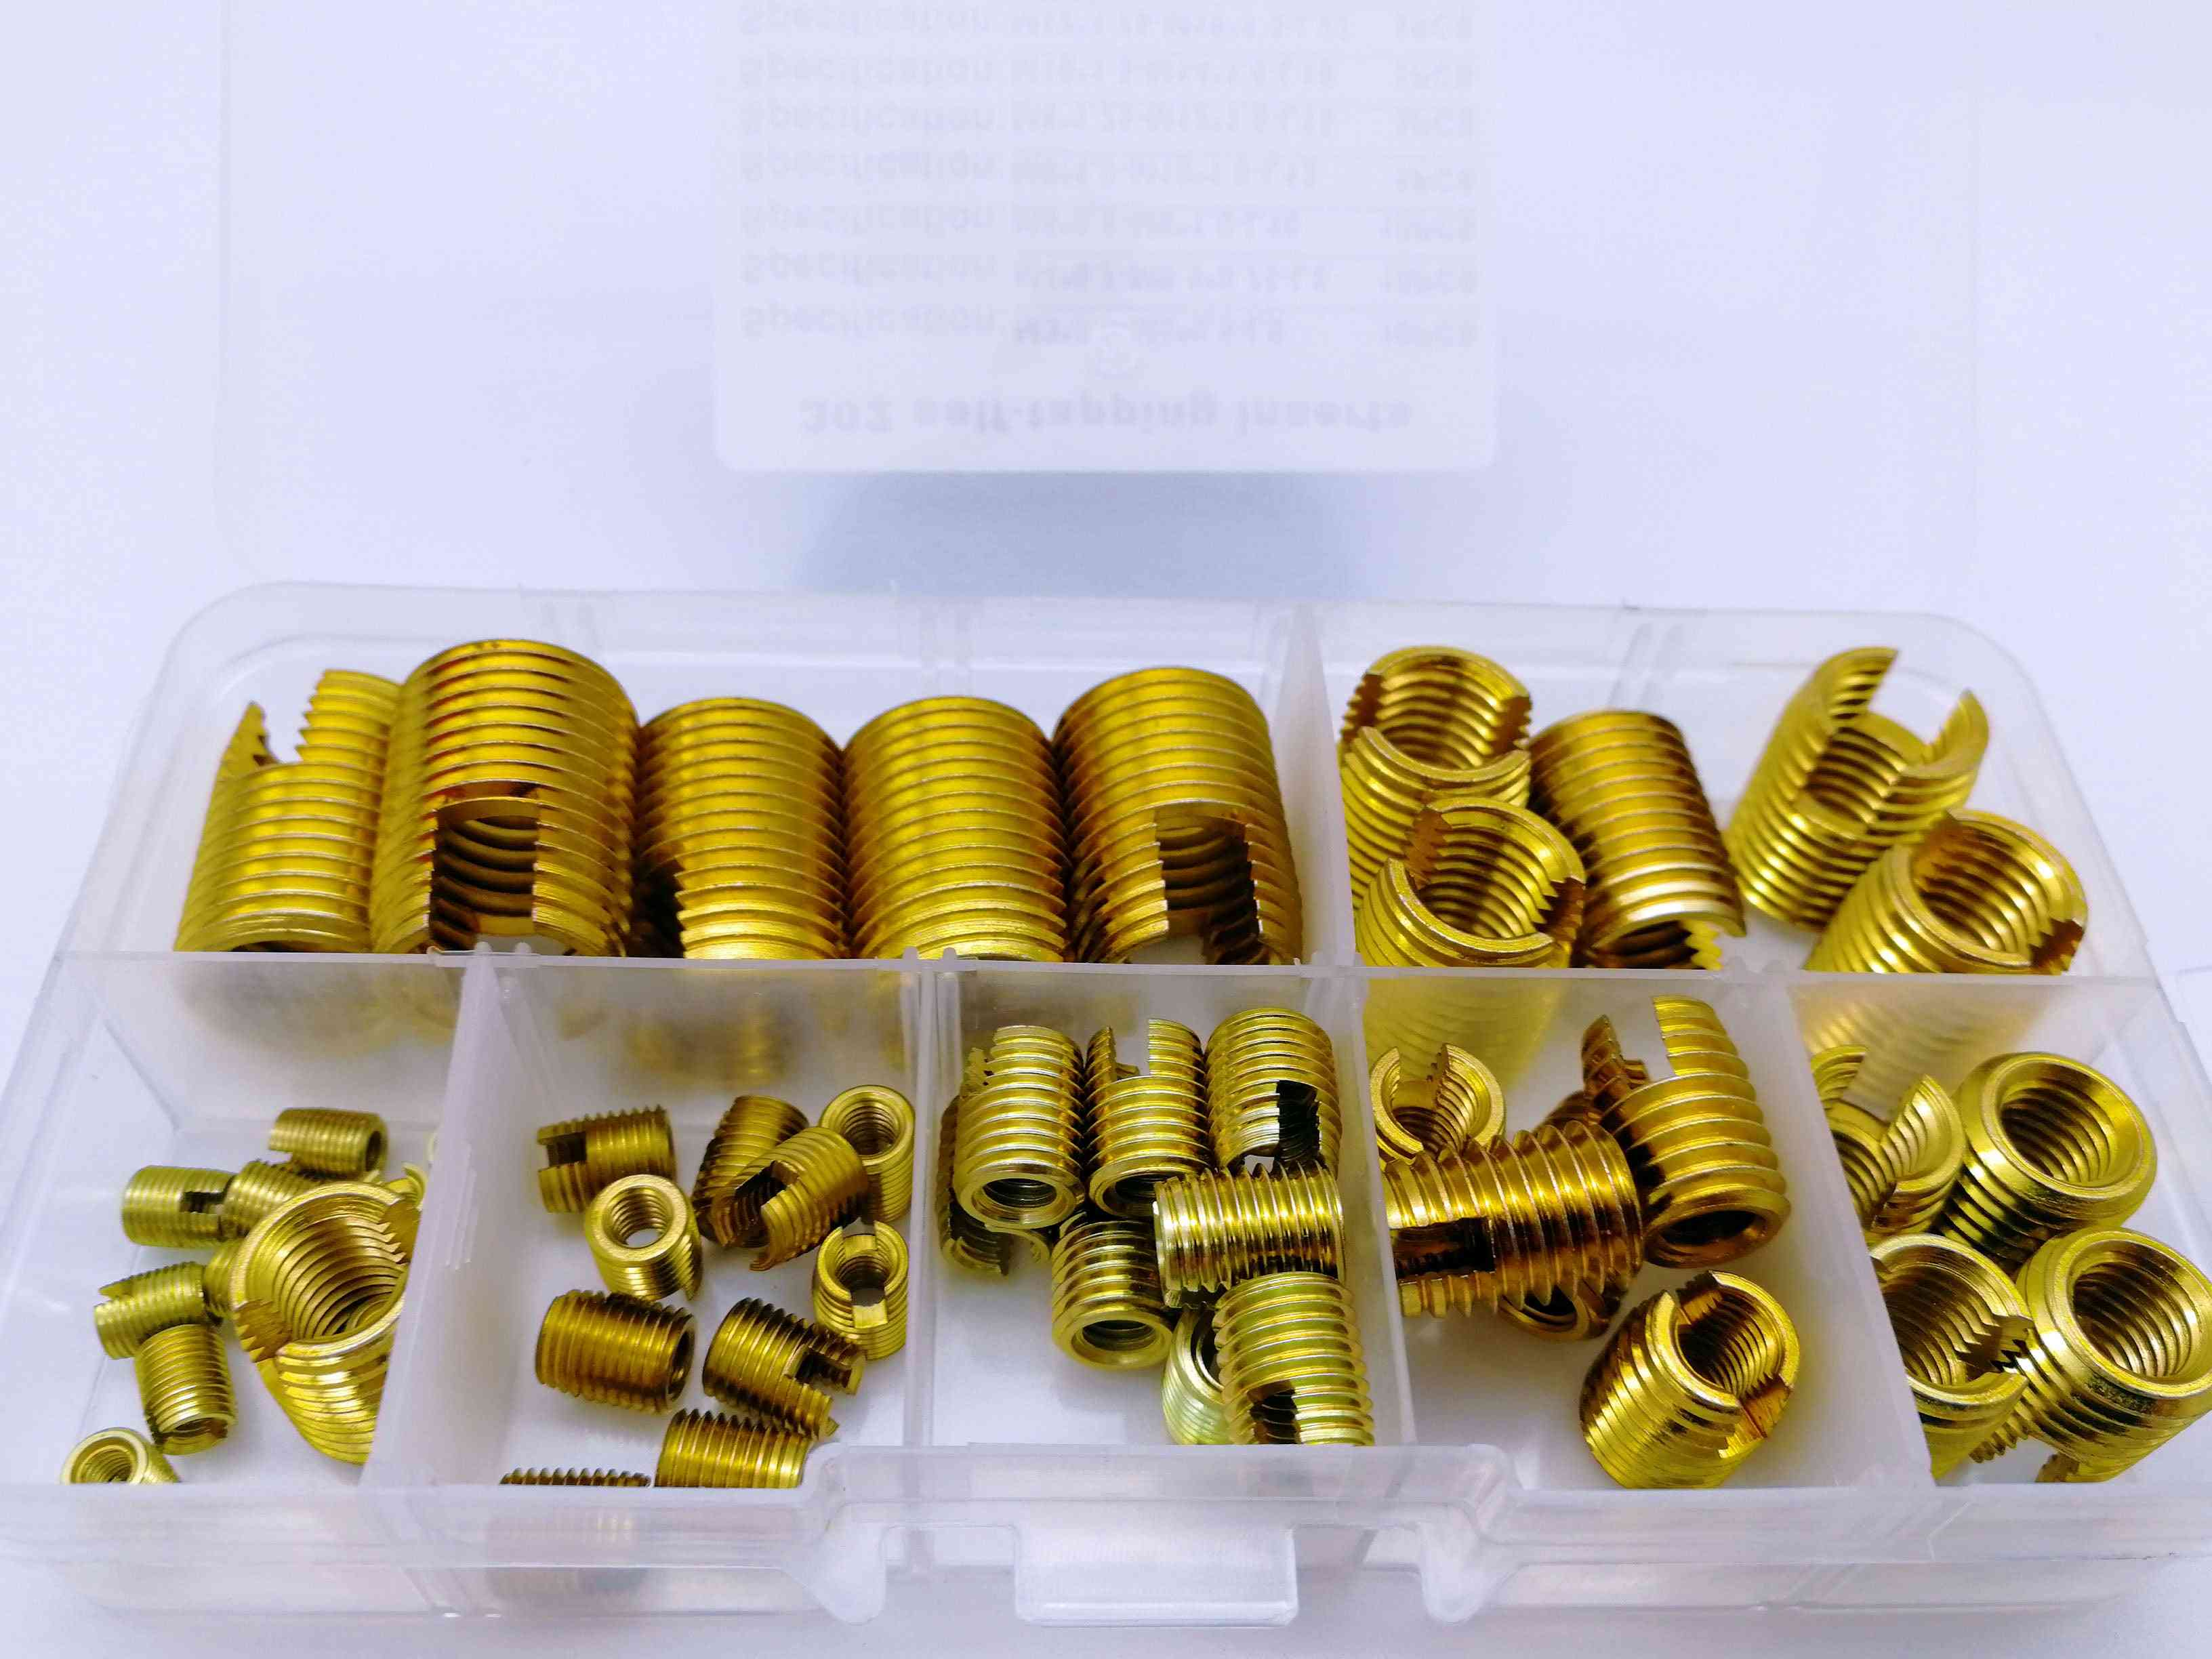 50pcs Of Self-tapping Threaded Insert Set